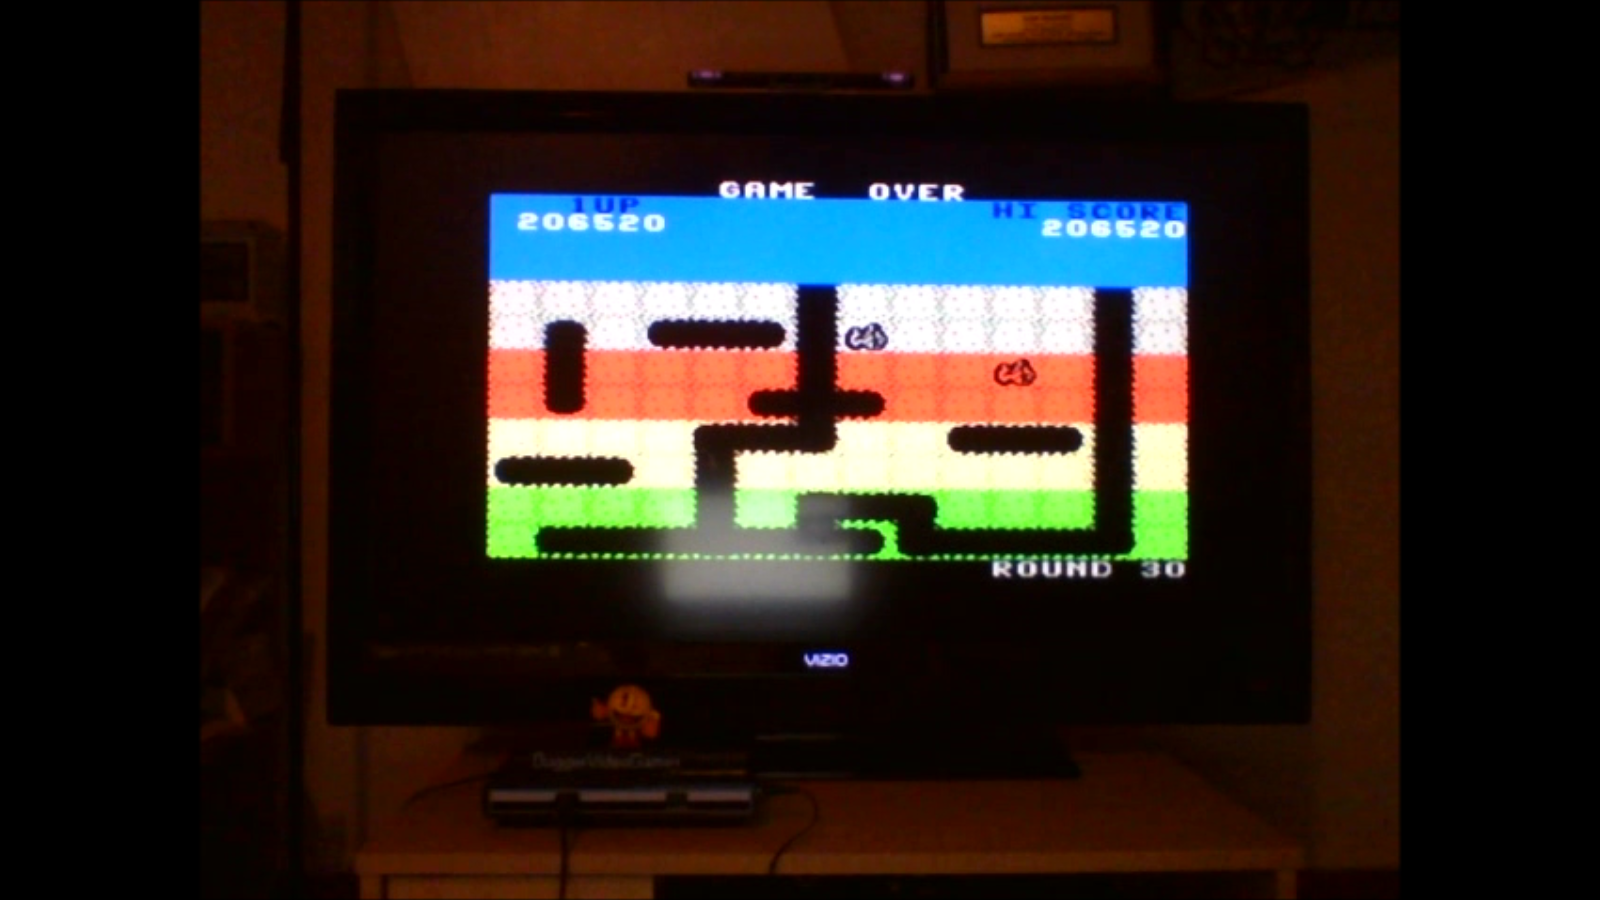 DuggerVideoGames: Dig Dug (Colecovision Emulated) 206,520 points on 2016-09-29 15:54:34